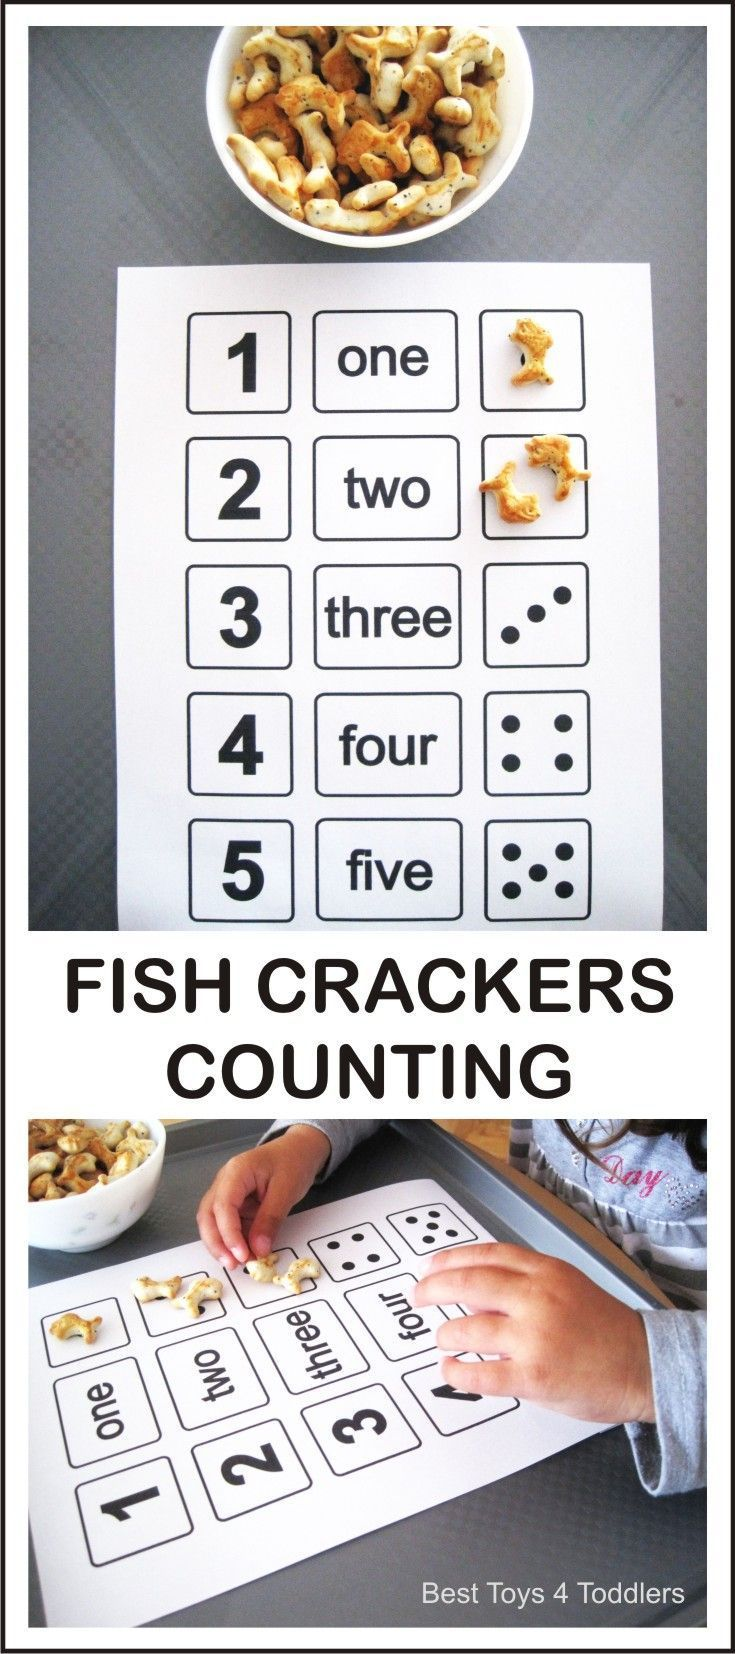 Sing One Two Three Four Five nursery rhyme and count with fish crackers! FREE PRINTABLE counting sheet available for download on the blog.